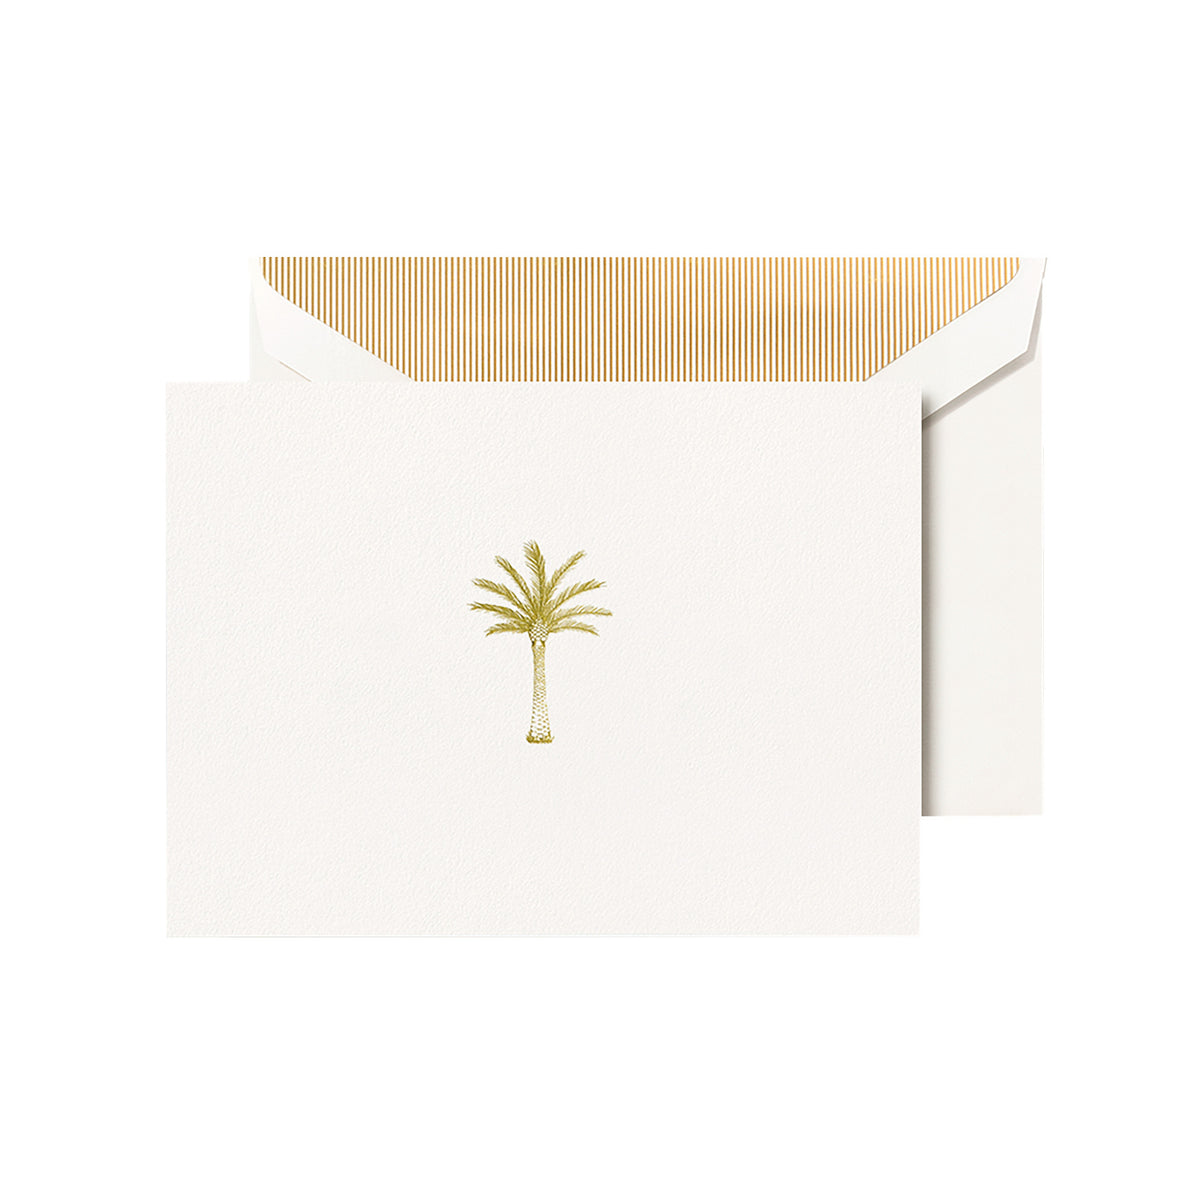 Crane - Palm Tree Classic Note with Gold Stripe Lining, Set of 10